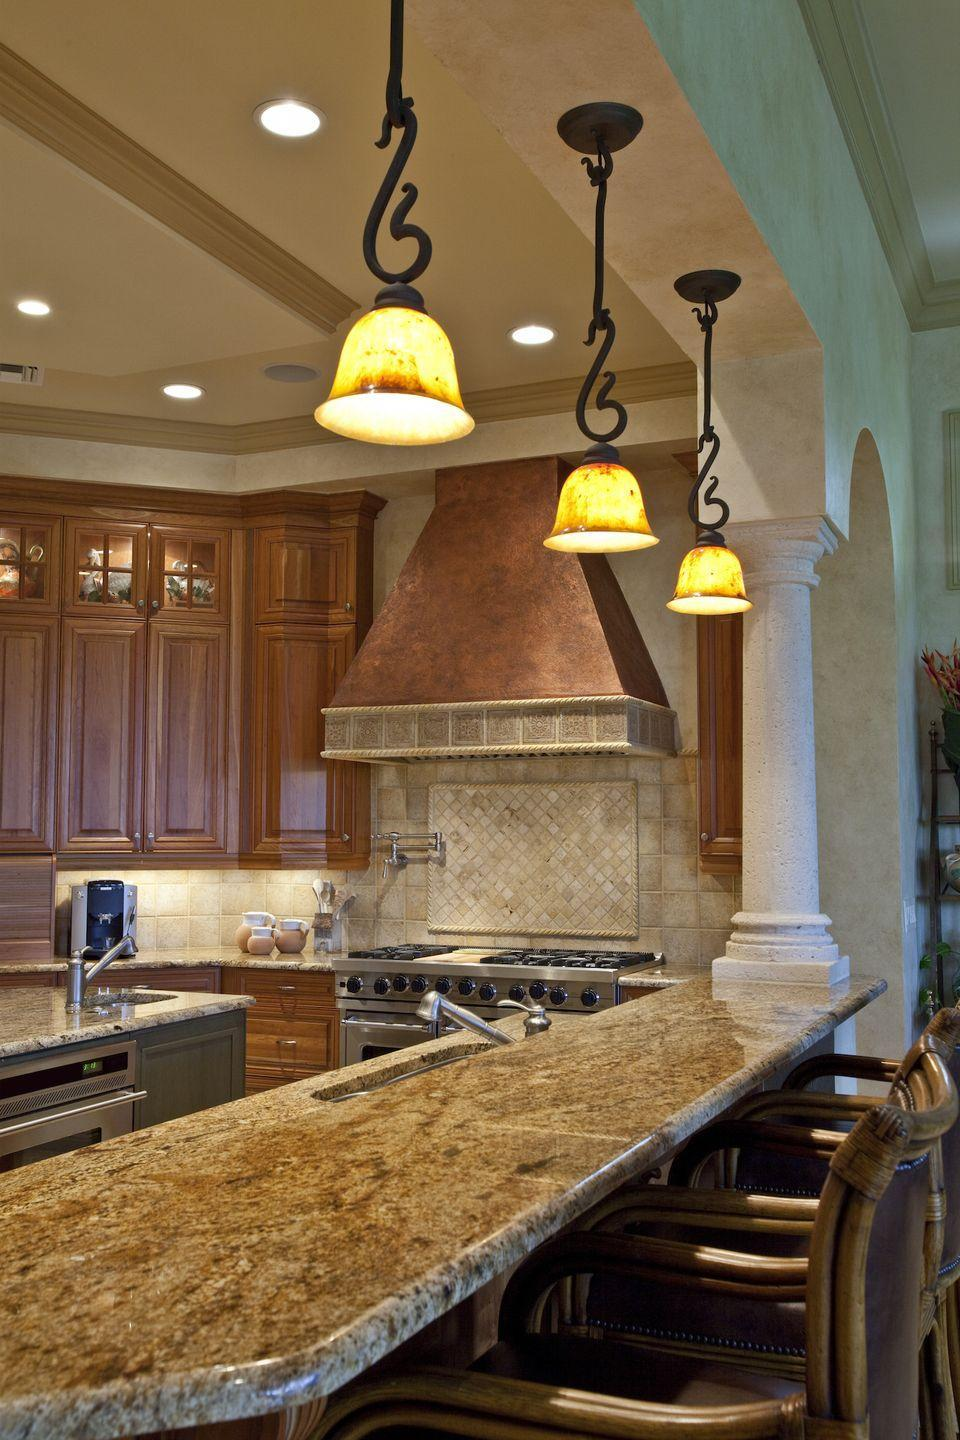 <p>This style was <em>everywhere </em>in the early 2000s, and we can certainly see its appeal. Today's kitchens, however, focus on creating a light, airy place to cook, rather than emulating a dark Italian villa. </p>